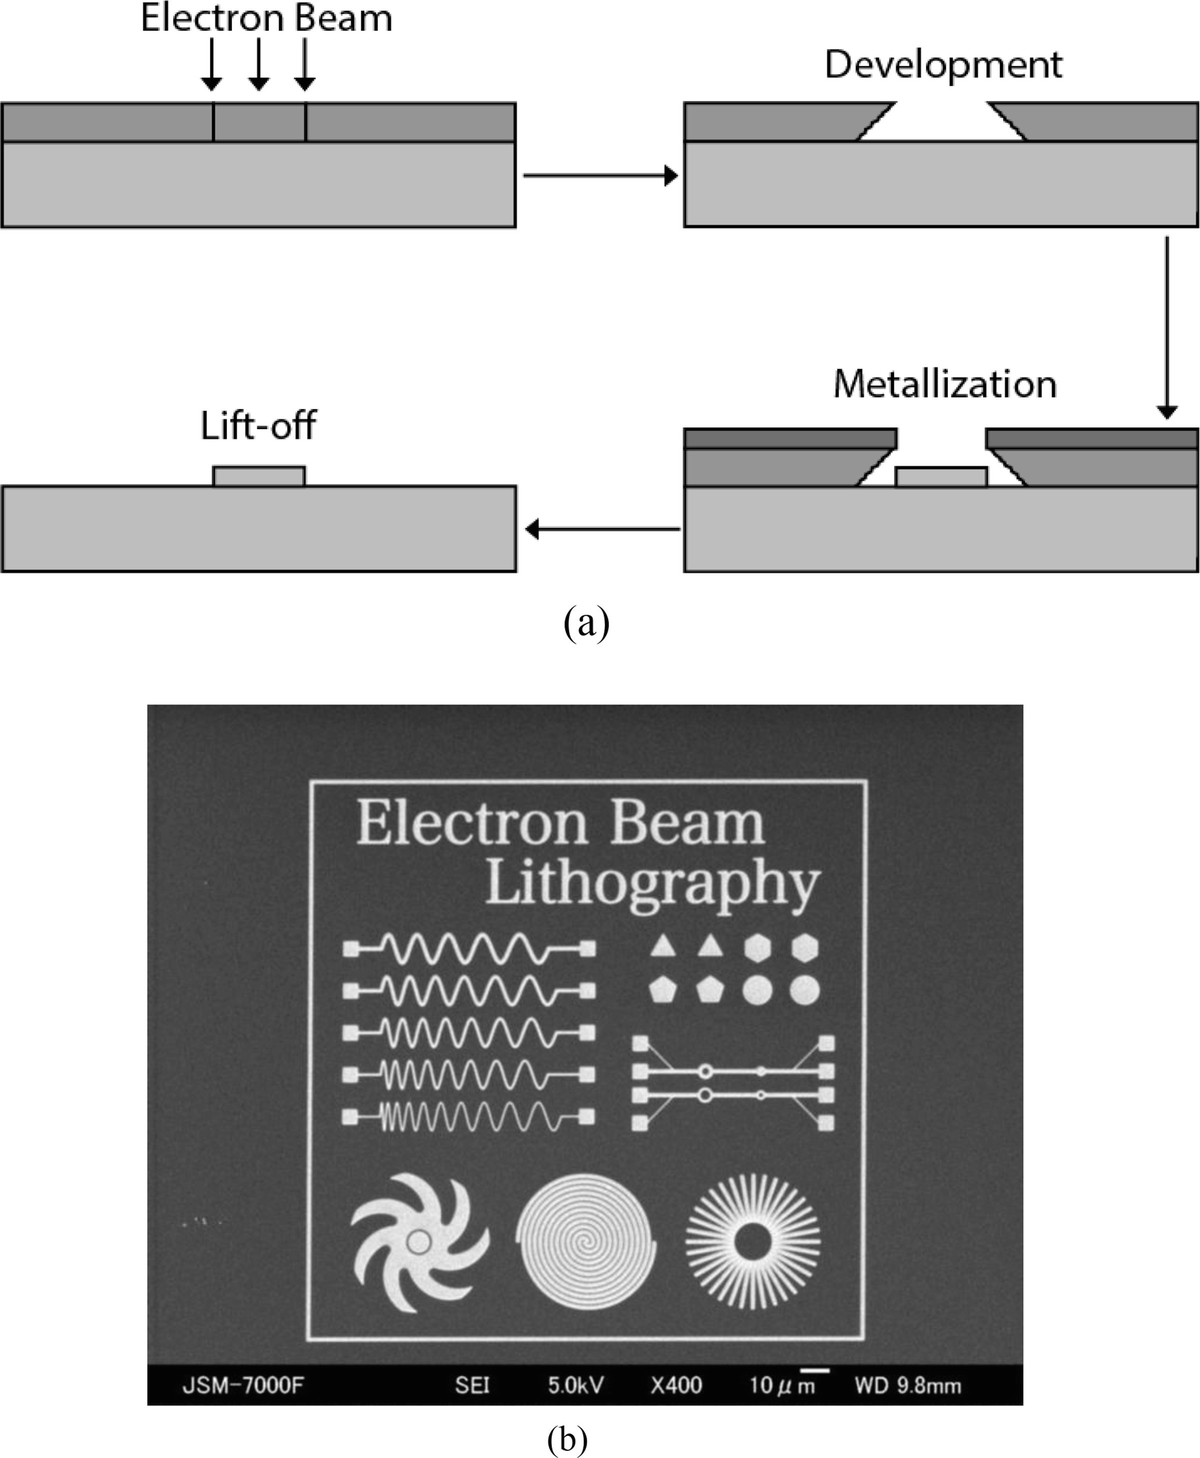 Specialized Sem Techniques Springerlink Tree Likewise Metal Detector Circuit On Schematic Pdf Open Image In New Window